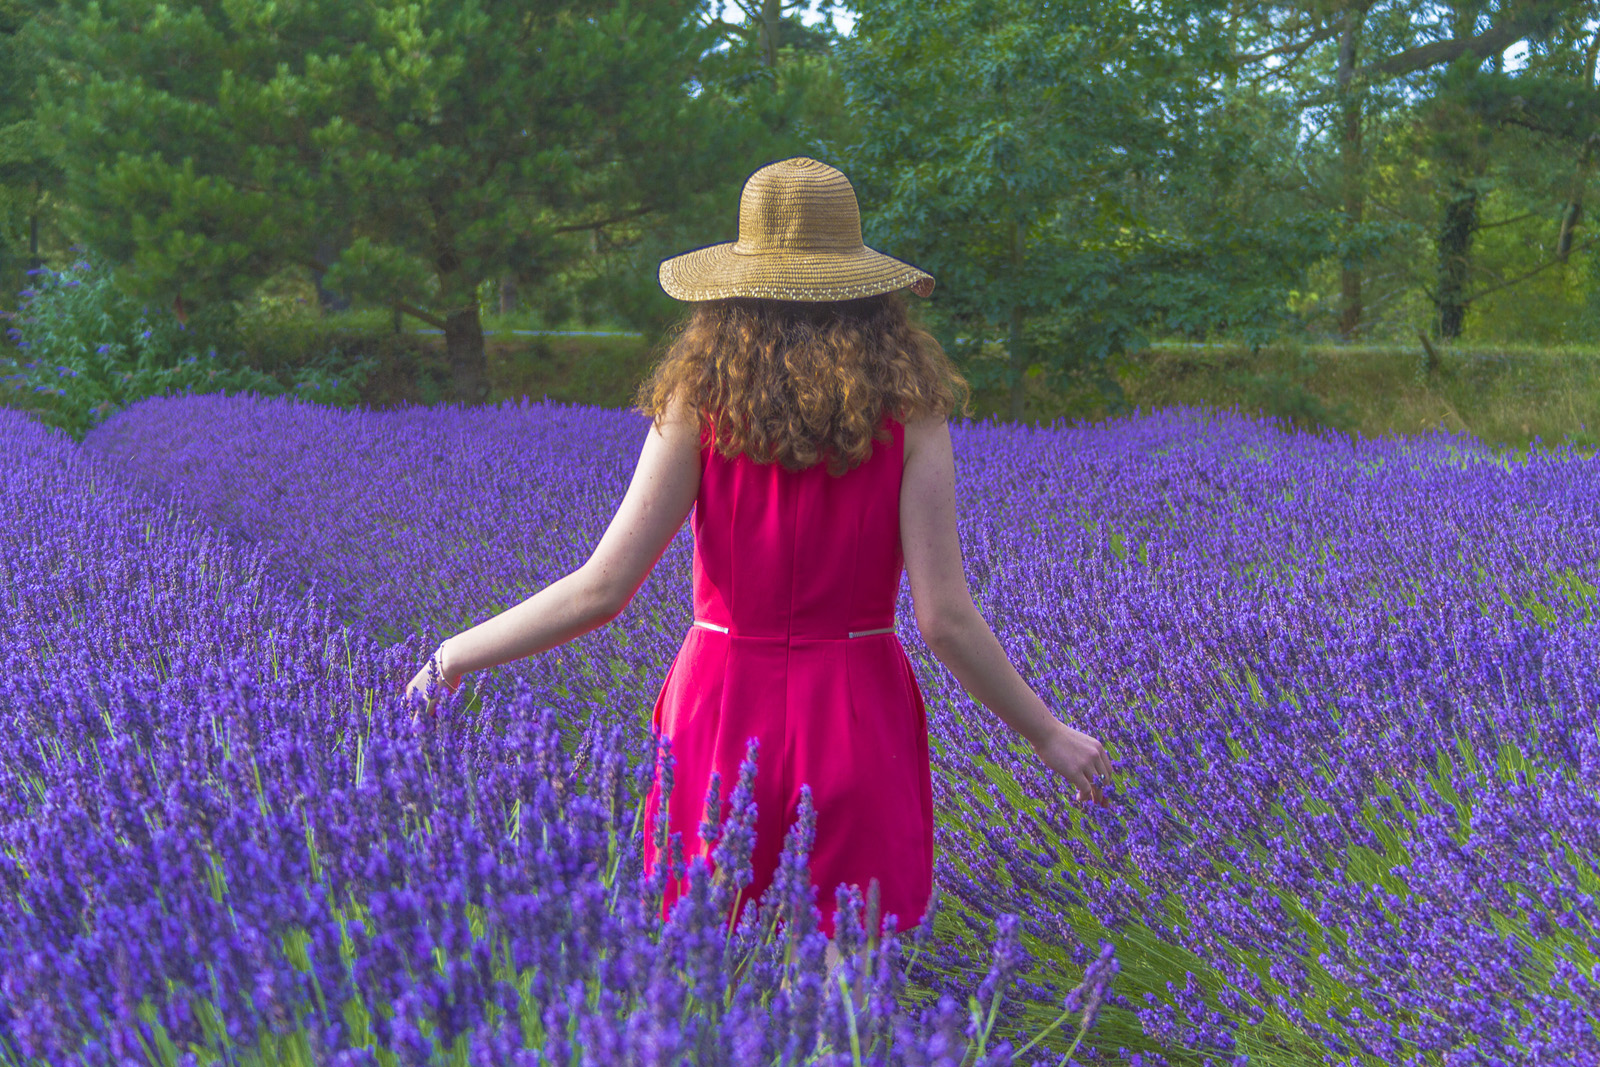 'Lavender Blue' by Terry Ward